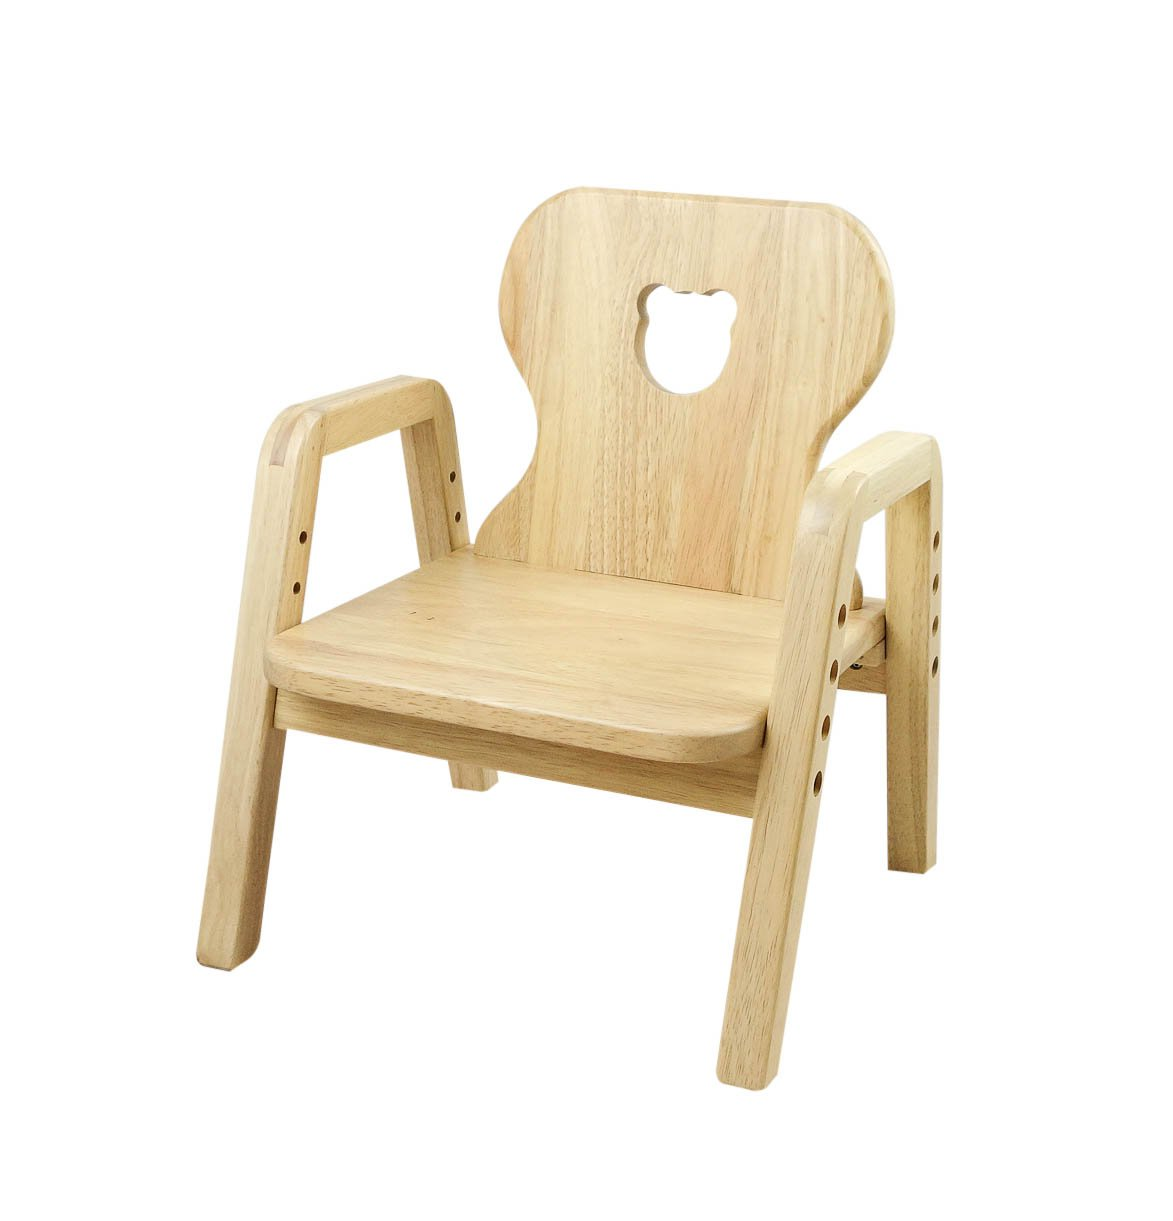 Primary Adjustable Wooden Chair (Bear) - For Children from 1 year to 7 year old. Mesasilla